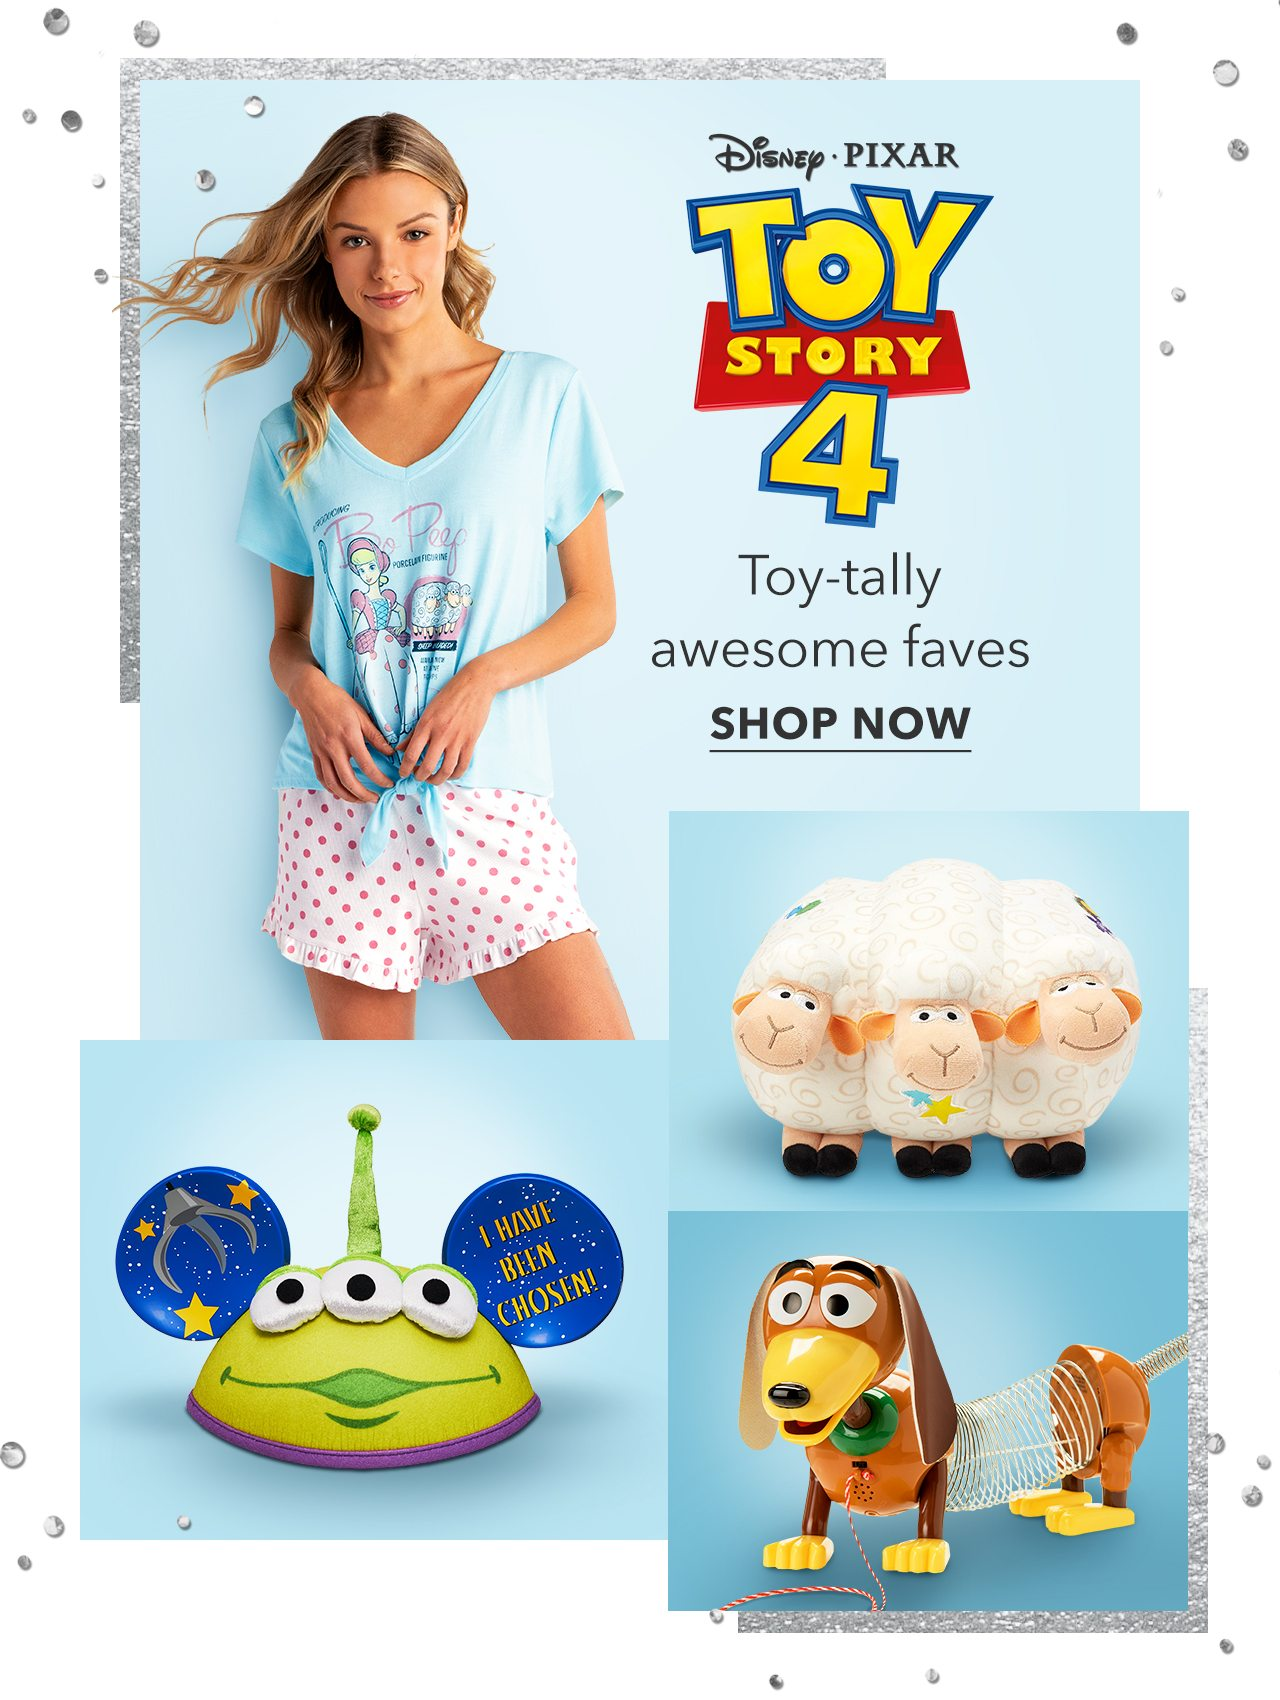 Toy Story 4 | Shop Now